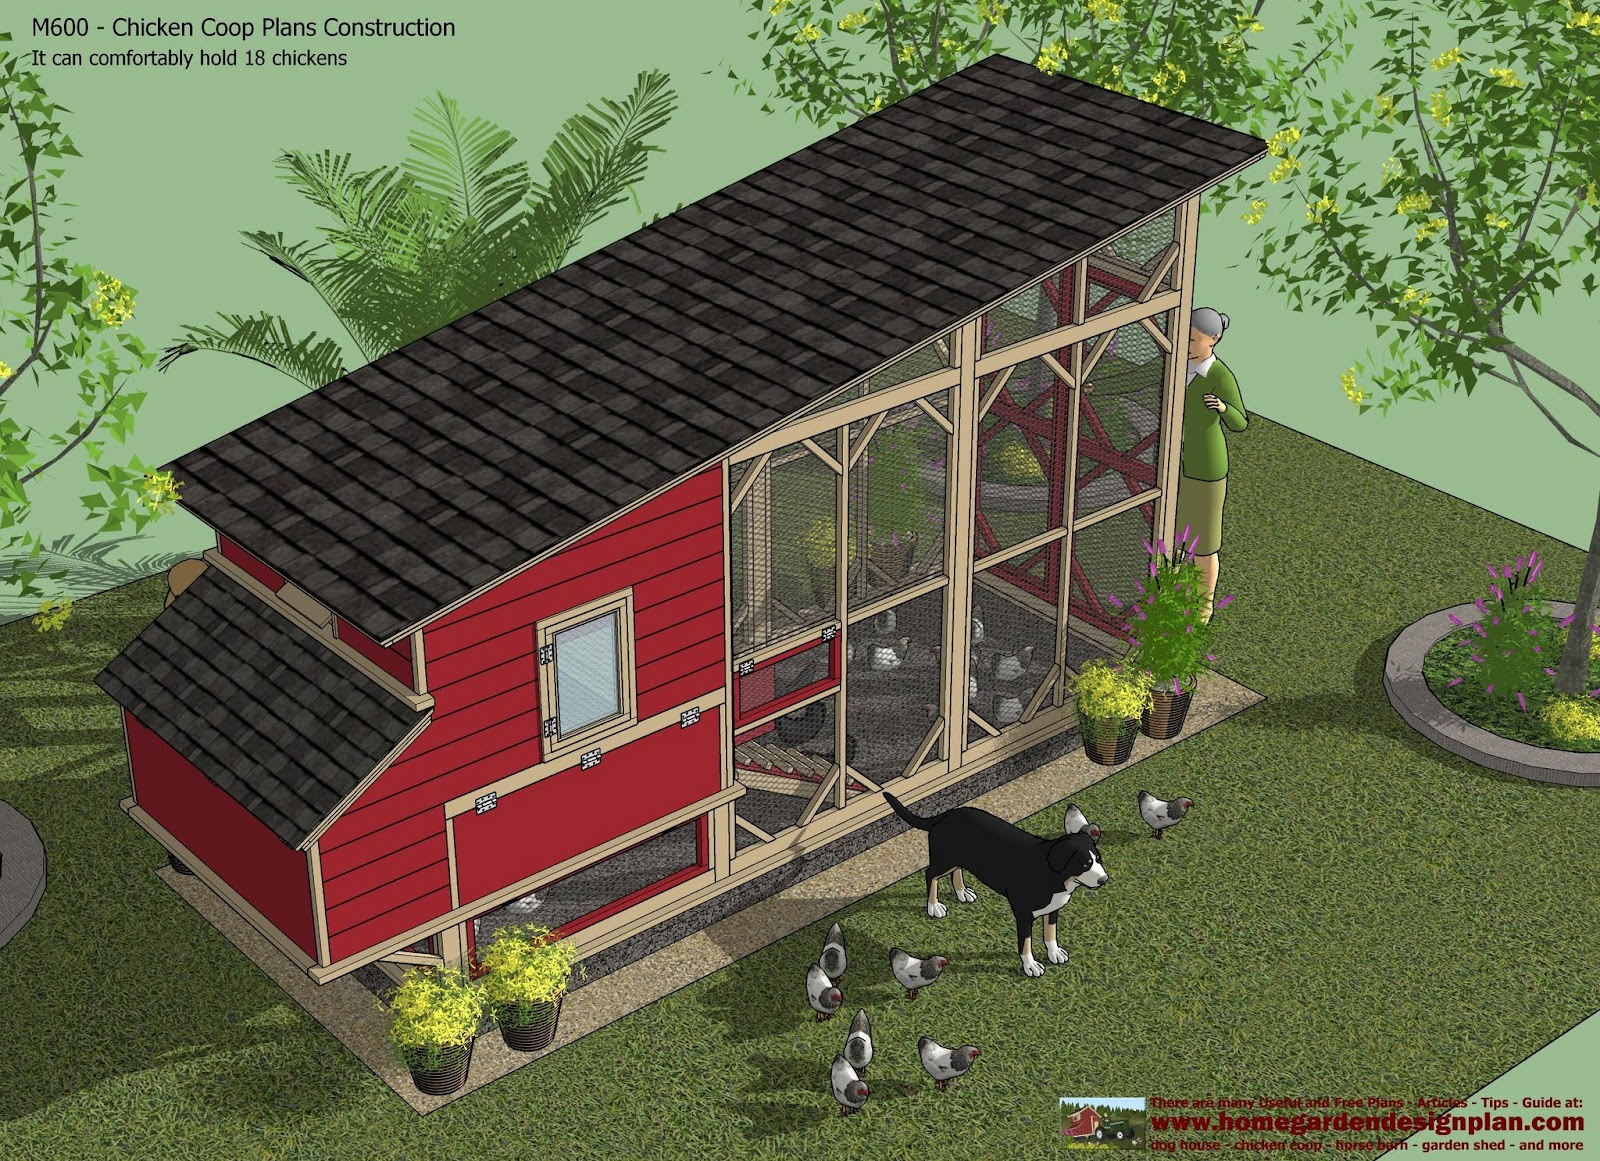 Home garden plans m600 chicken coop plans construction for How to design a chicken coop